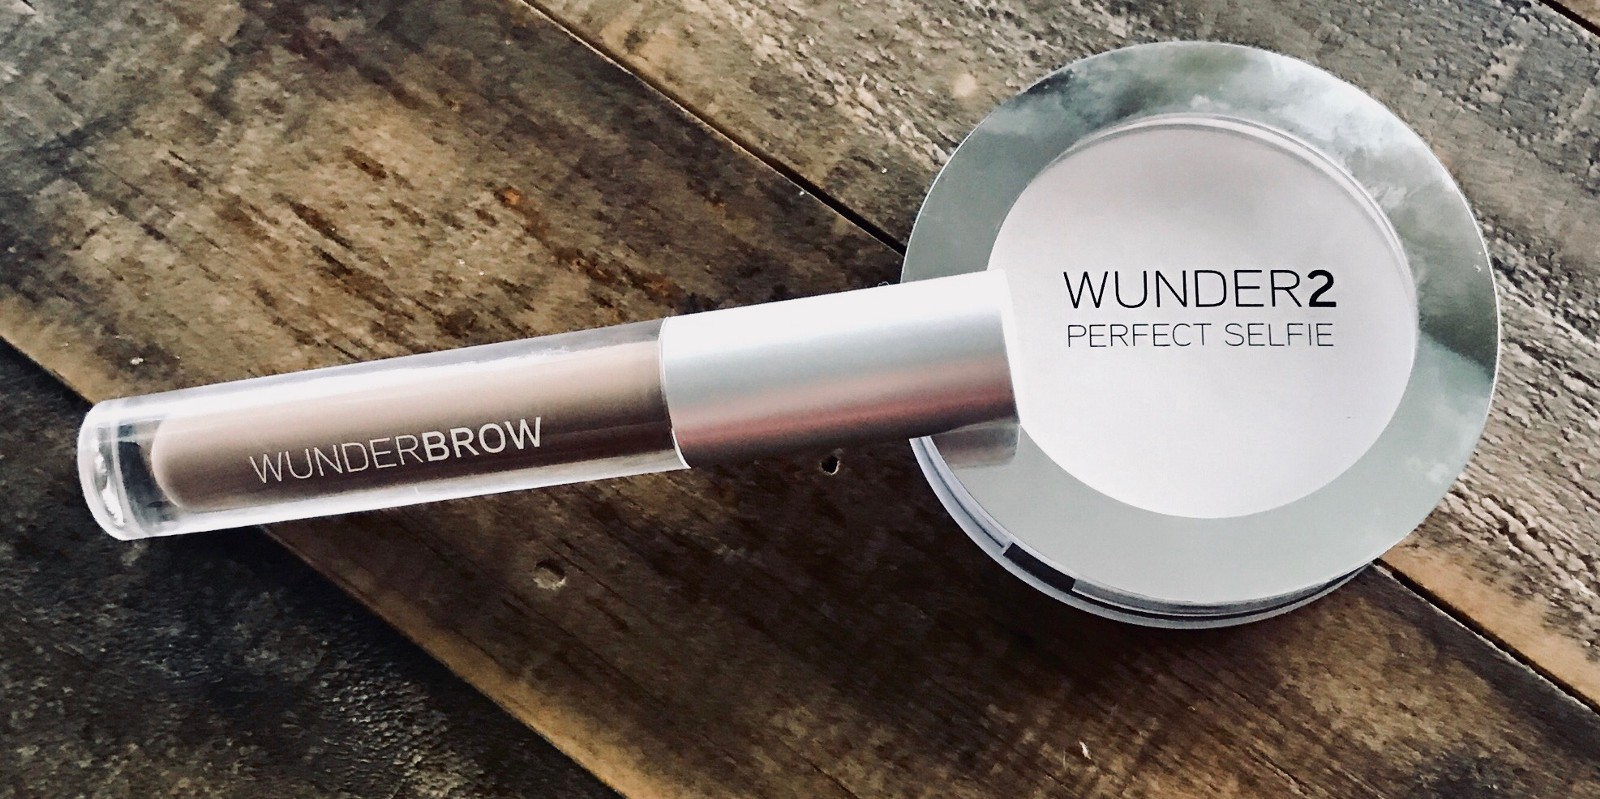 Wunder2 Wunderbrow Eyebrow Gel Perfect Selfie Finishing Powder